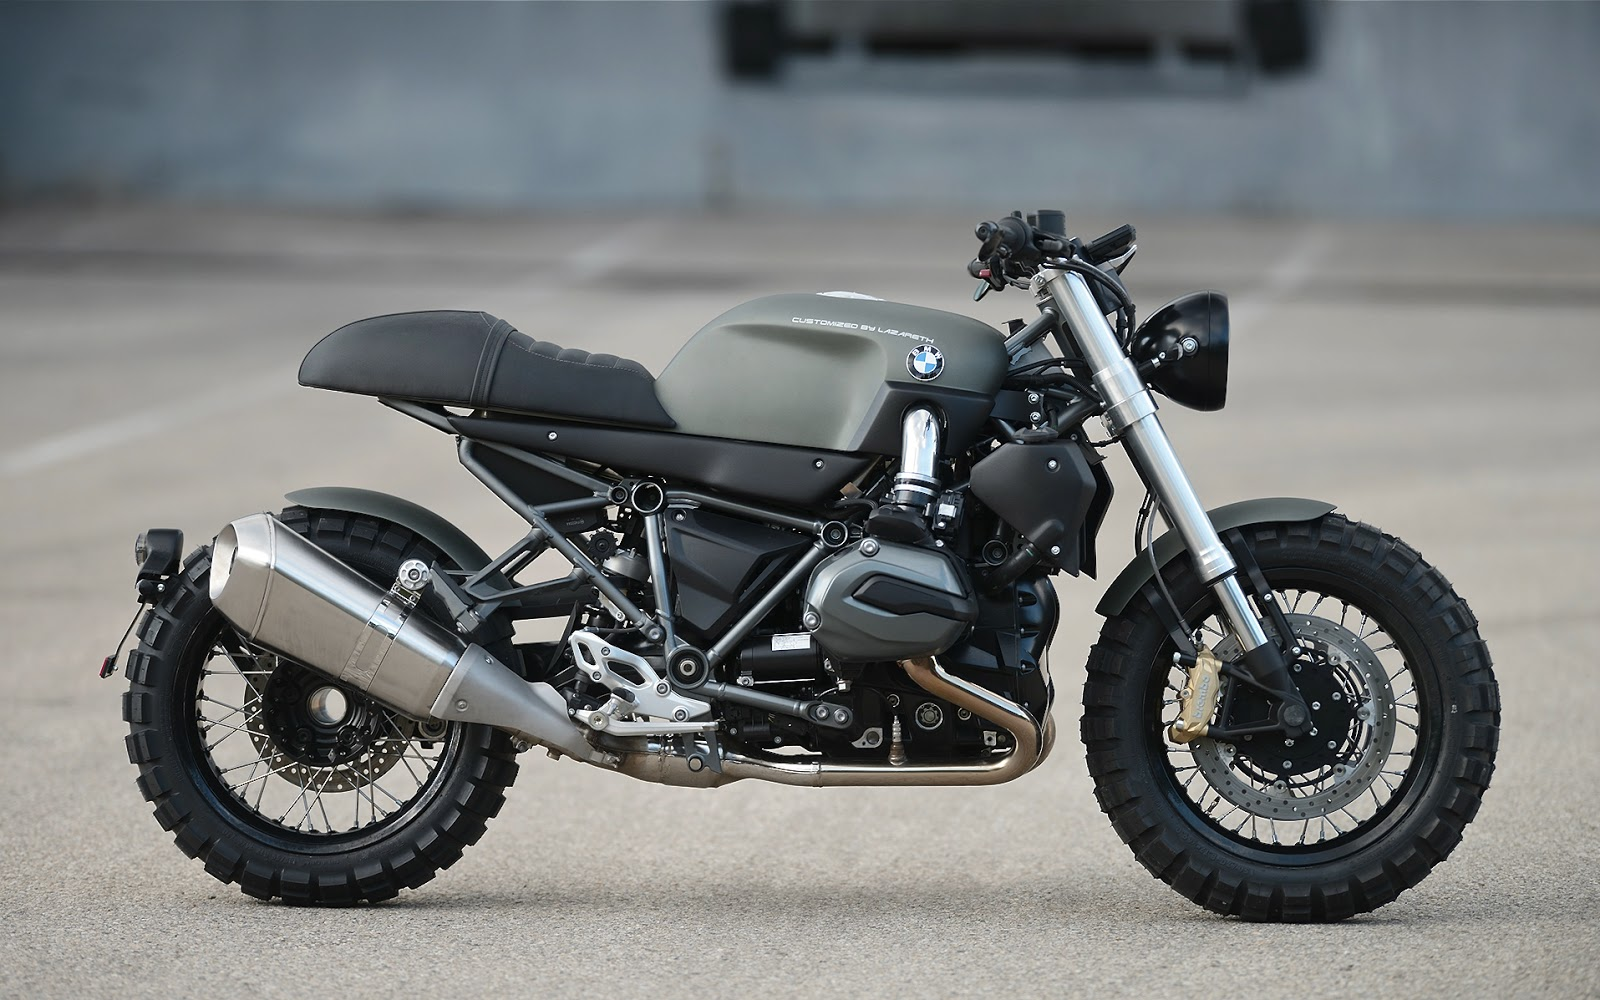 Bmw R 1200 Rt Cafe Racer Motorview Co